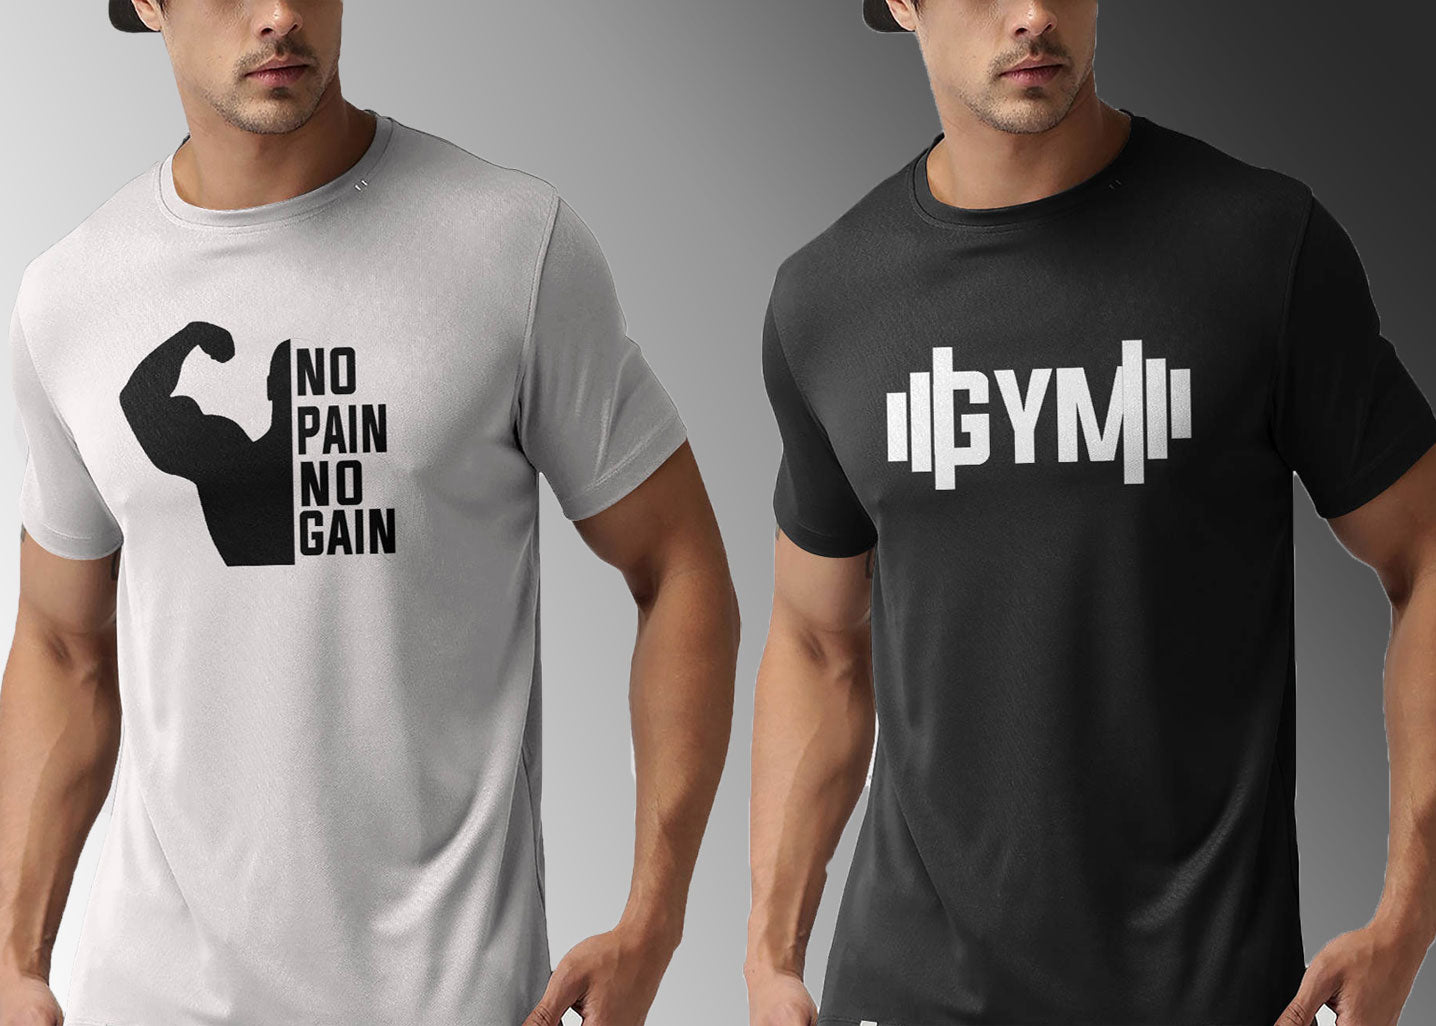 Pack of 2 Gym T-Shirts - Passion Swap